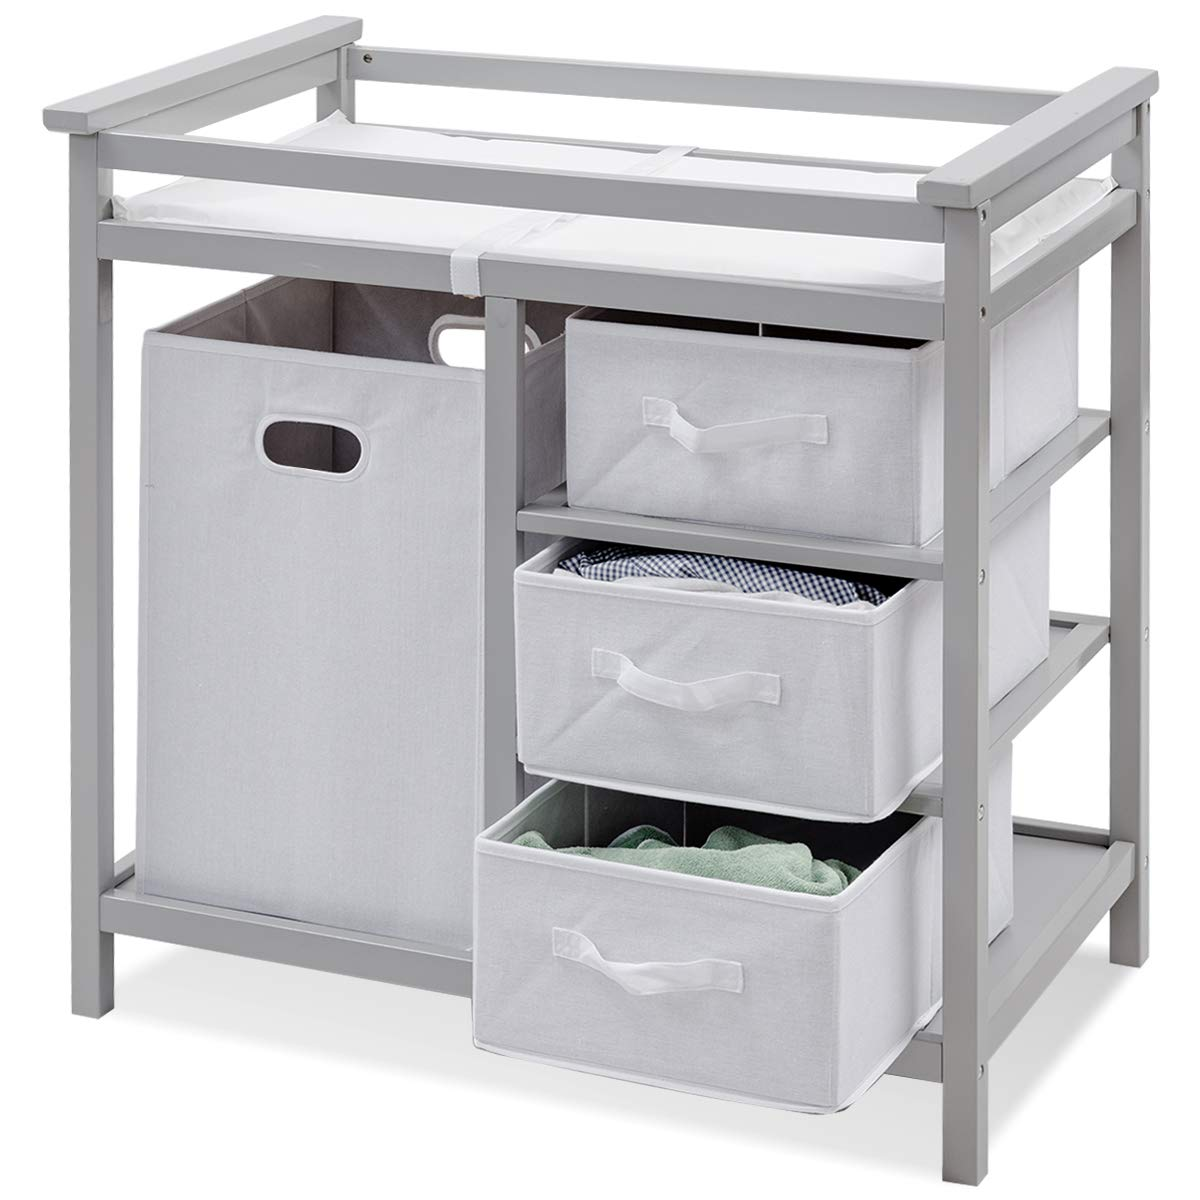 Costzon Baby Changing Table, Infant Diaper Changing Table Organization, Diaper Storage Nursery Station with Hamper and 3 Baskets (Gray+White) by Costzon